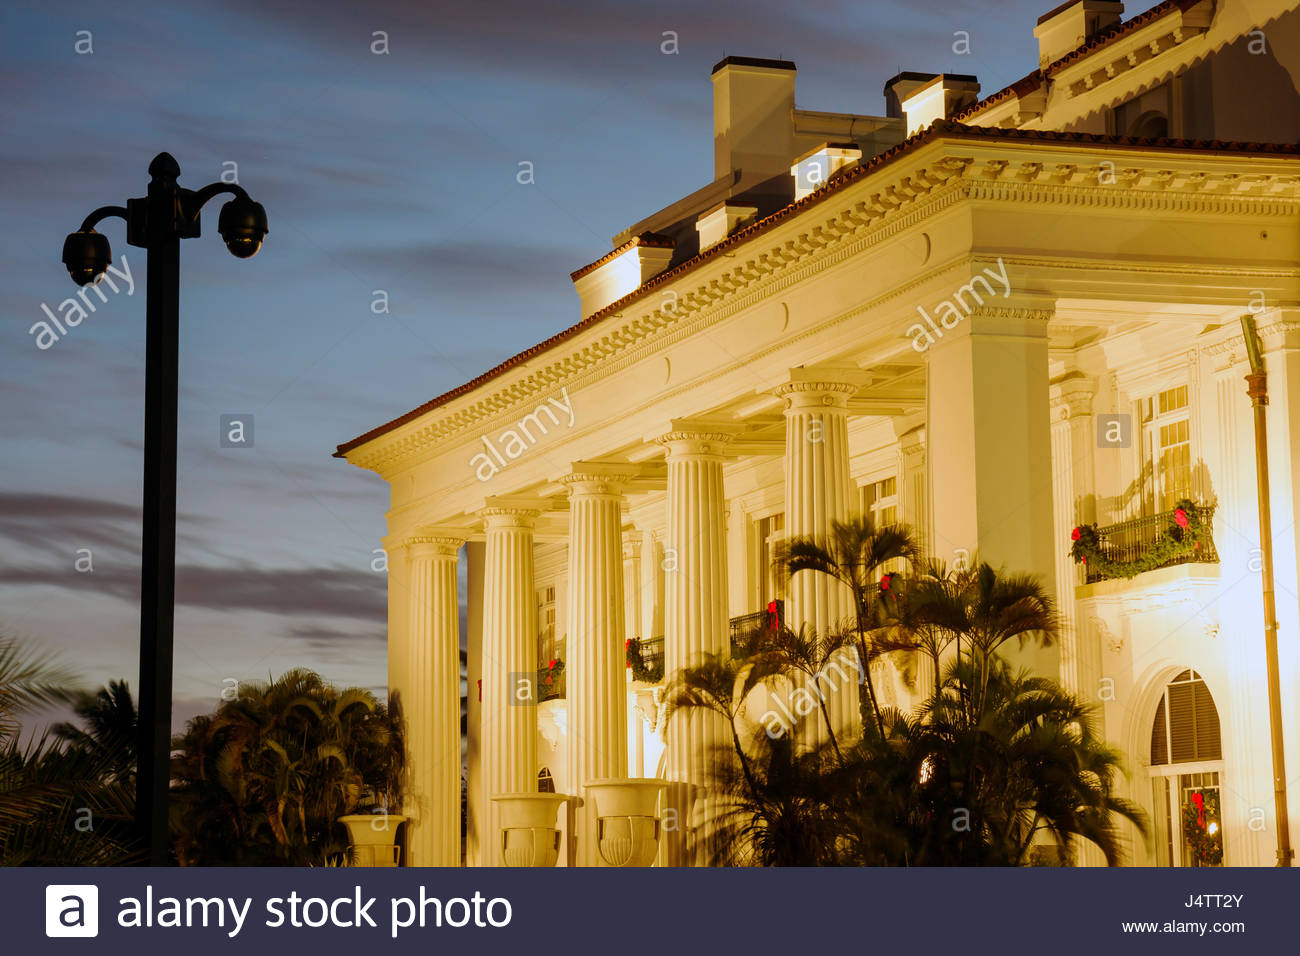 Palm Beach Florida Flagler Mansion Museum historic landmark Guilded Age building exterior lighted dusk column Beaux - Stock Image